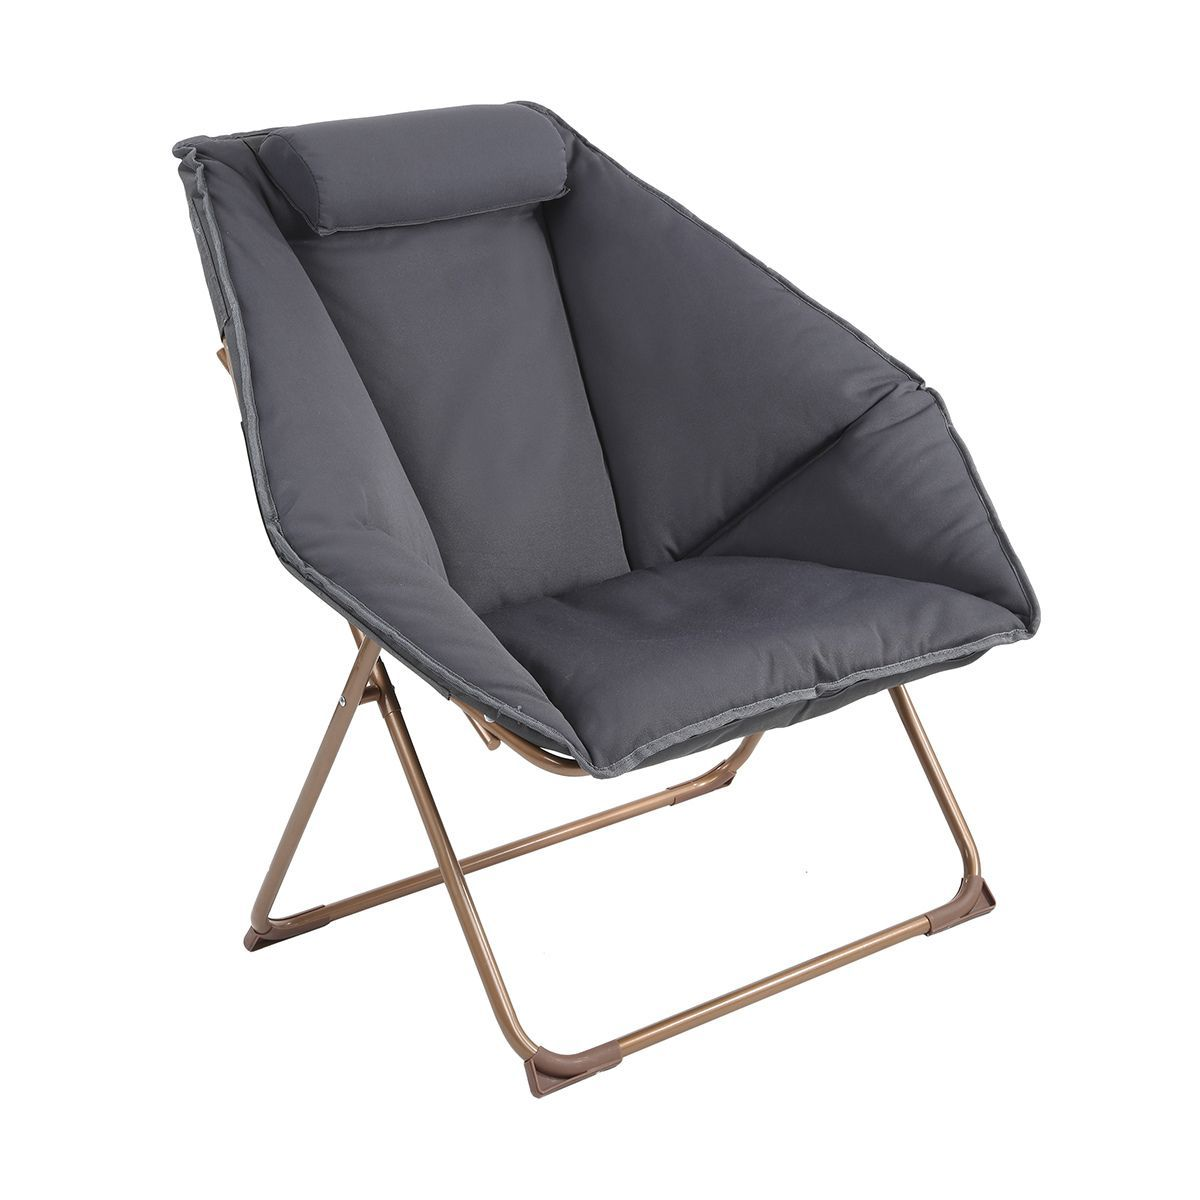 Diamond Chair Kmart Glampingisrad Camping Chairs Camping Chair Chair